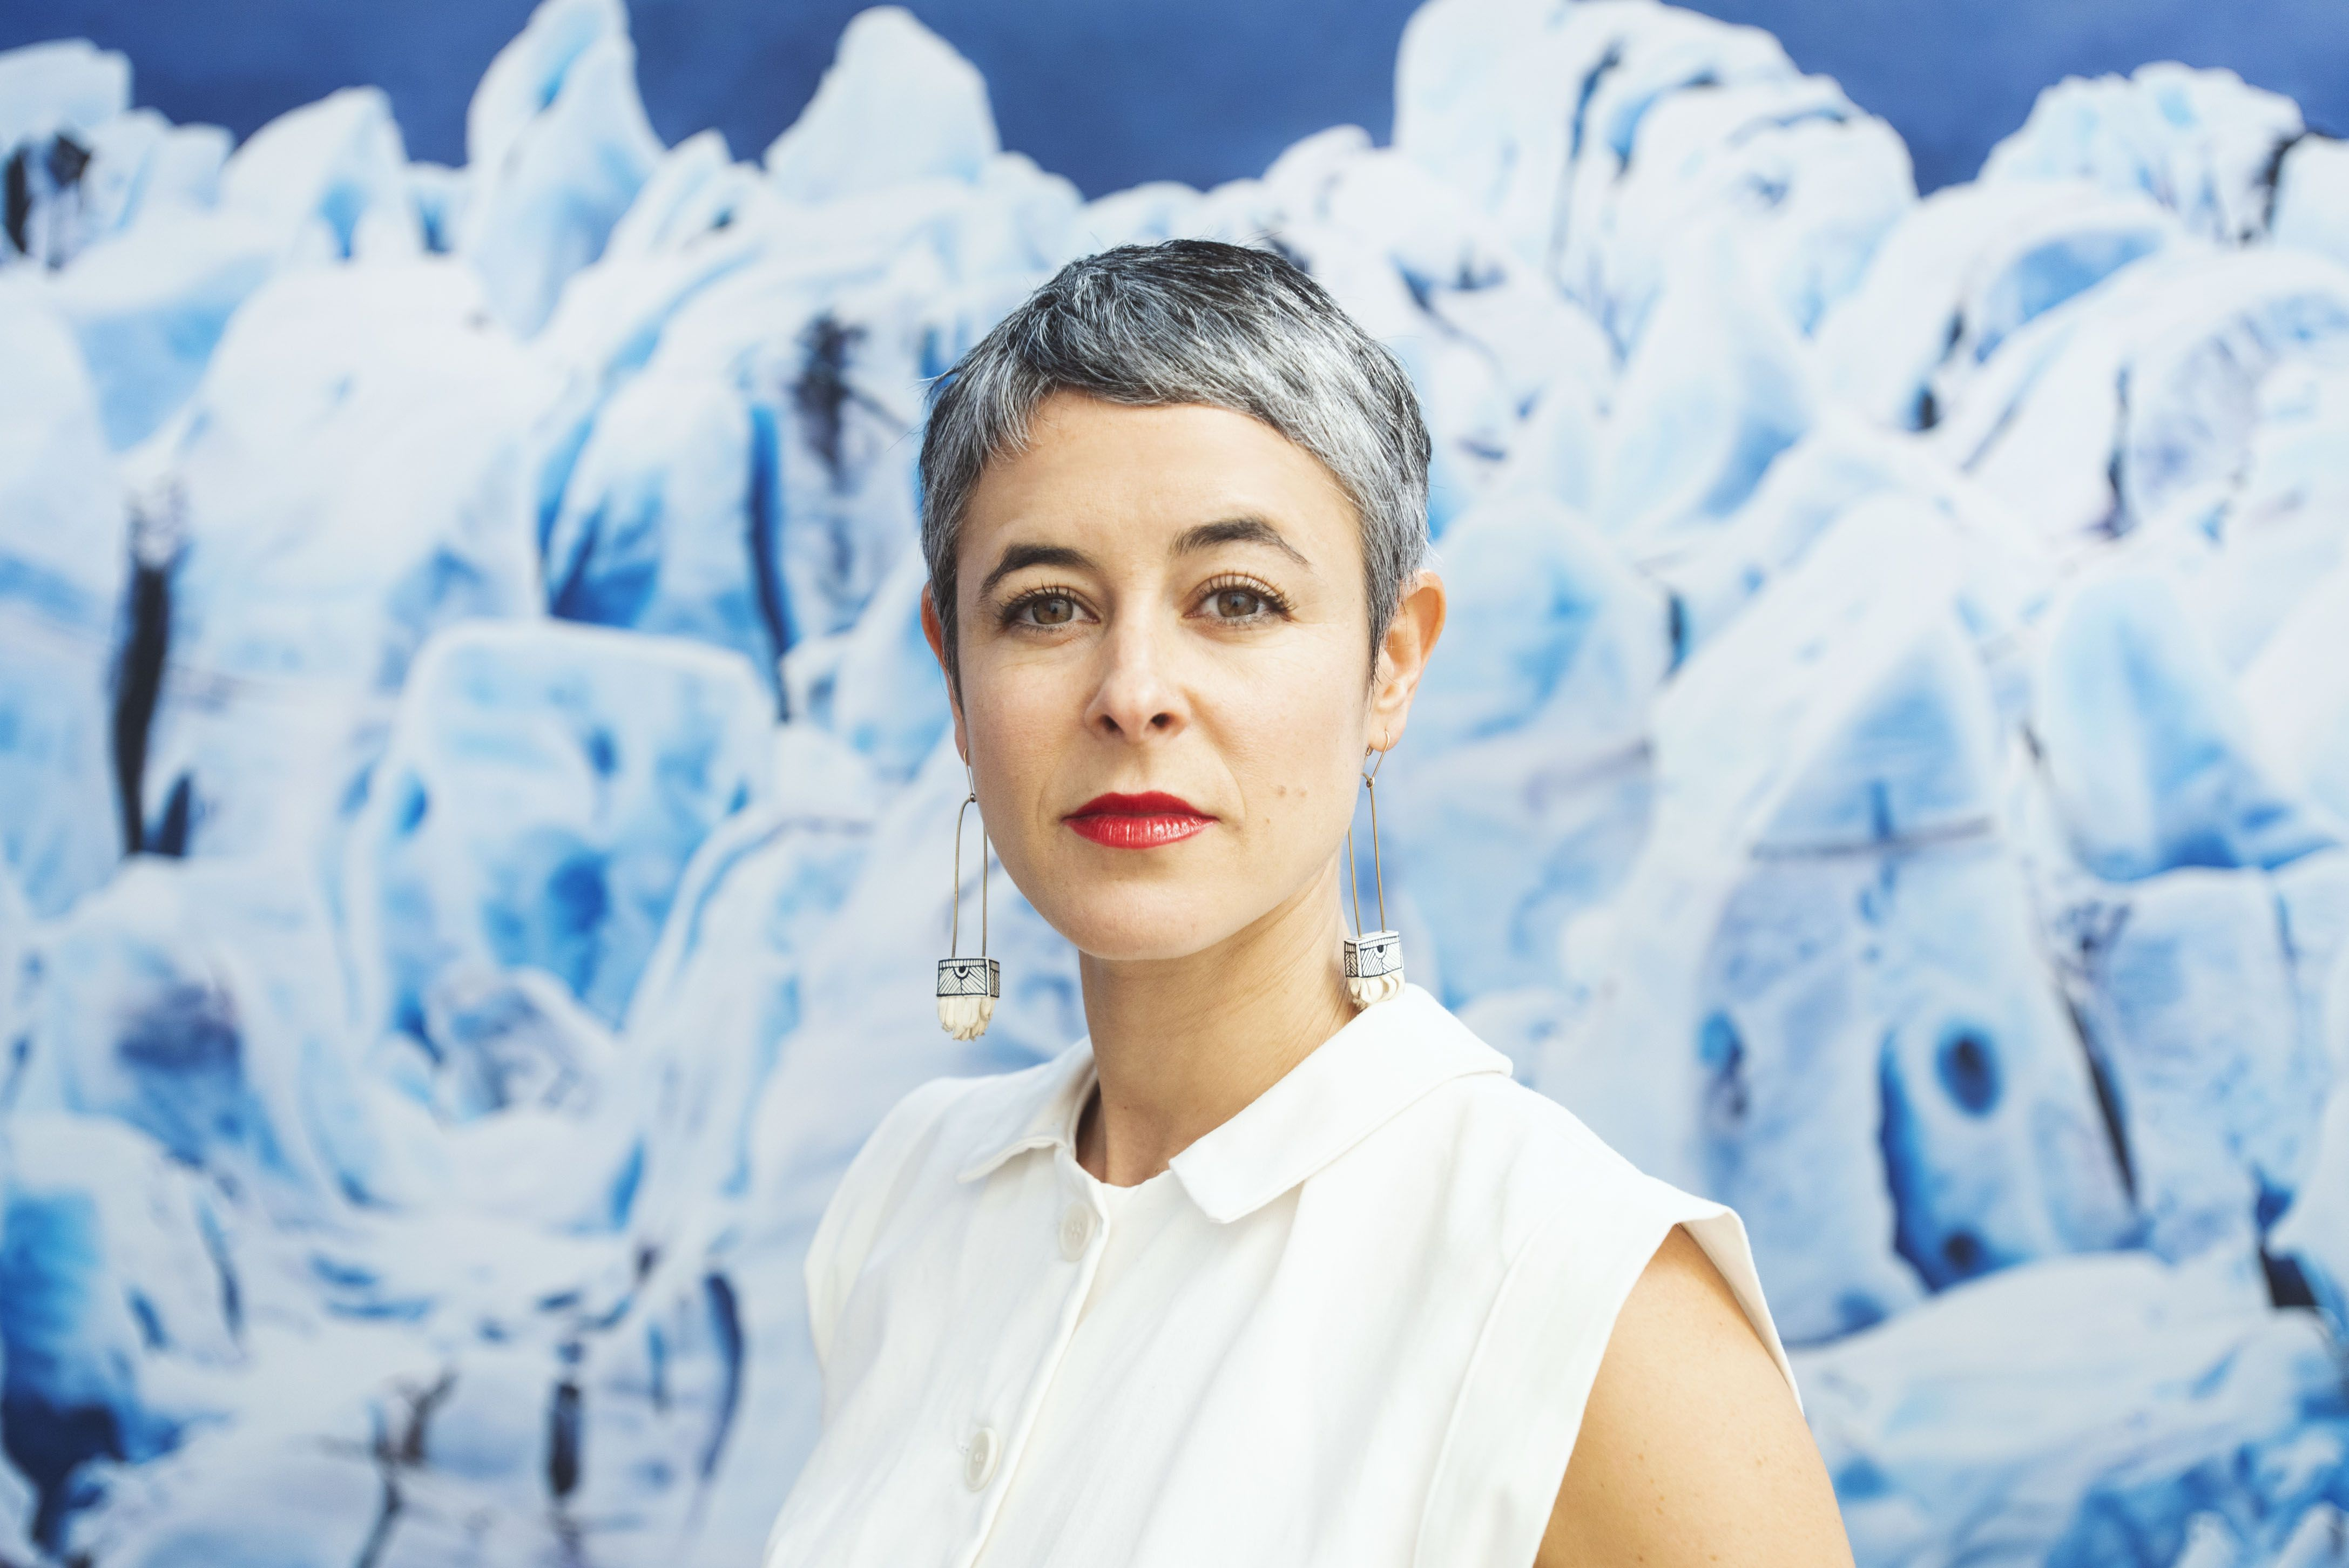 Artist Zaria Forman Confronts Global Warming One Melting Icescape at a Time